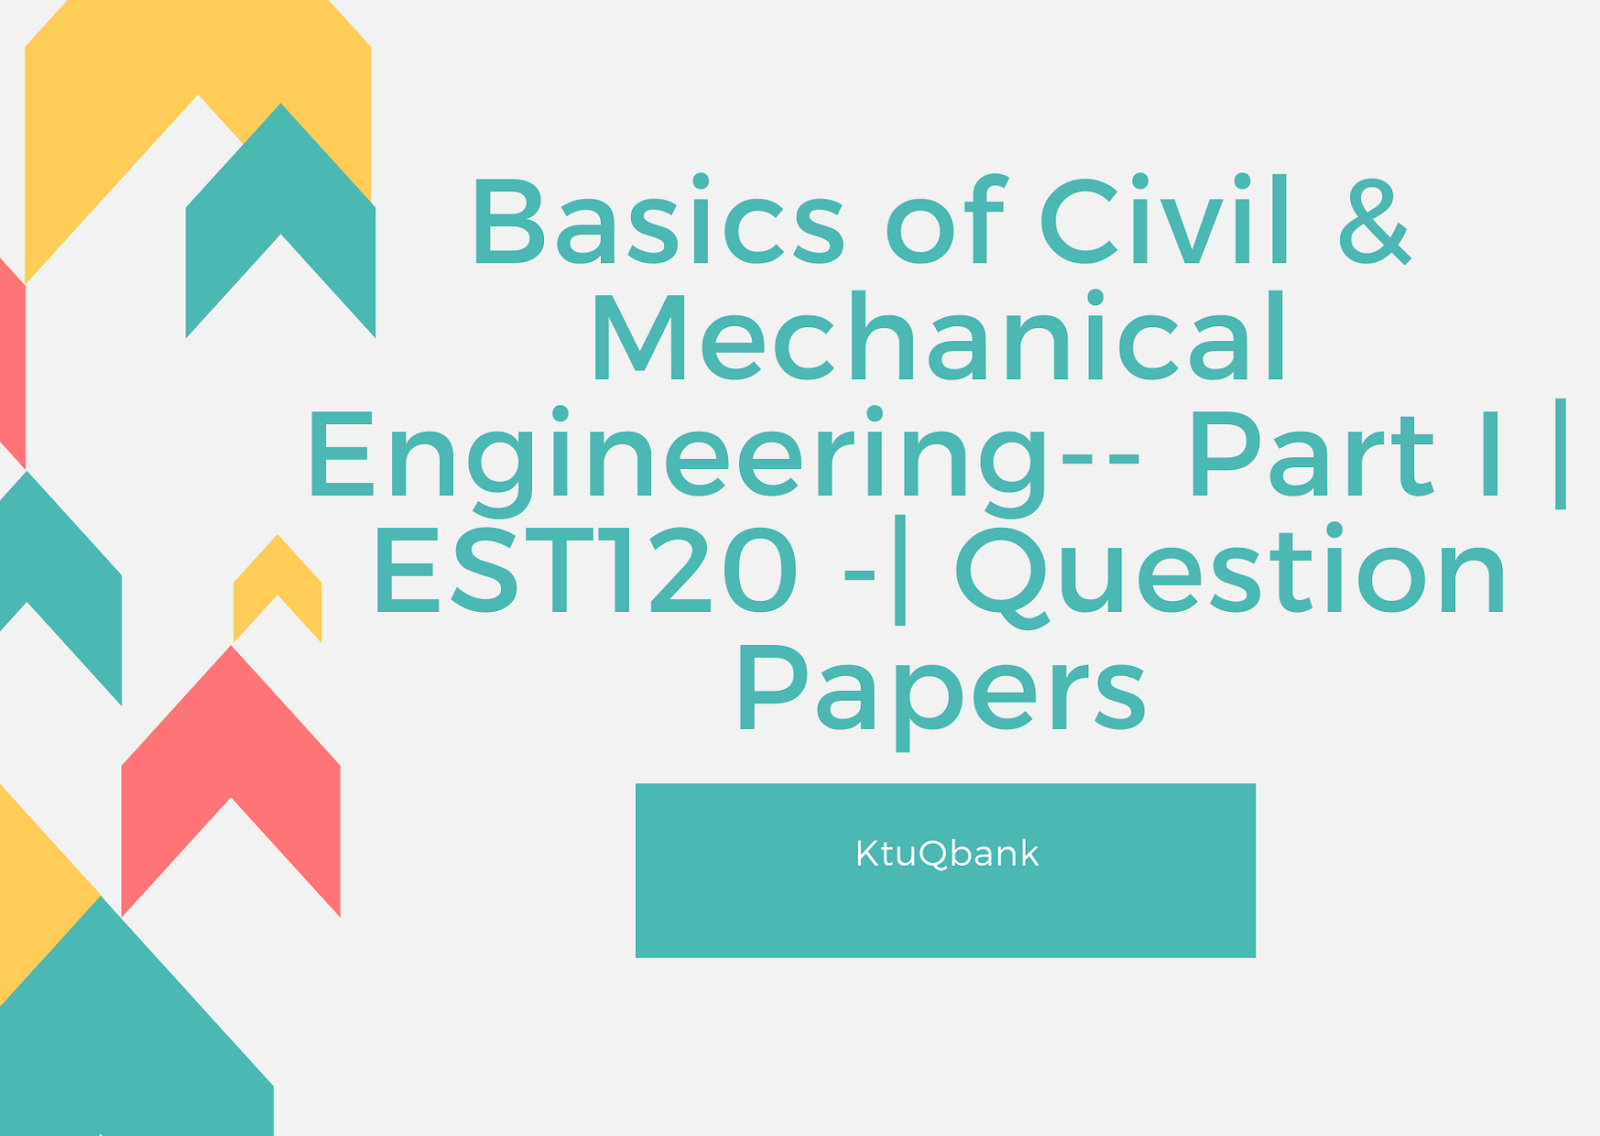 Basics Of Civil & Mechanical Engineering  | EST120 | Question Papers